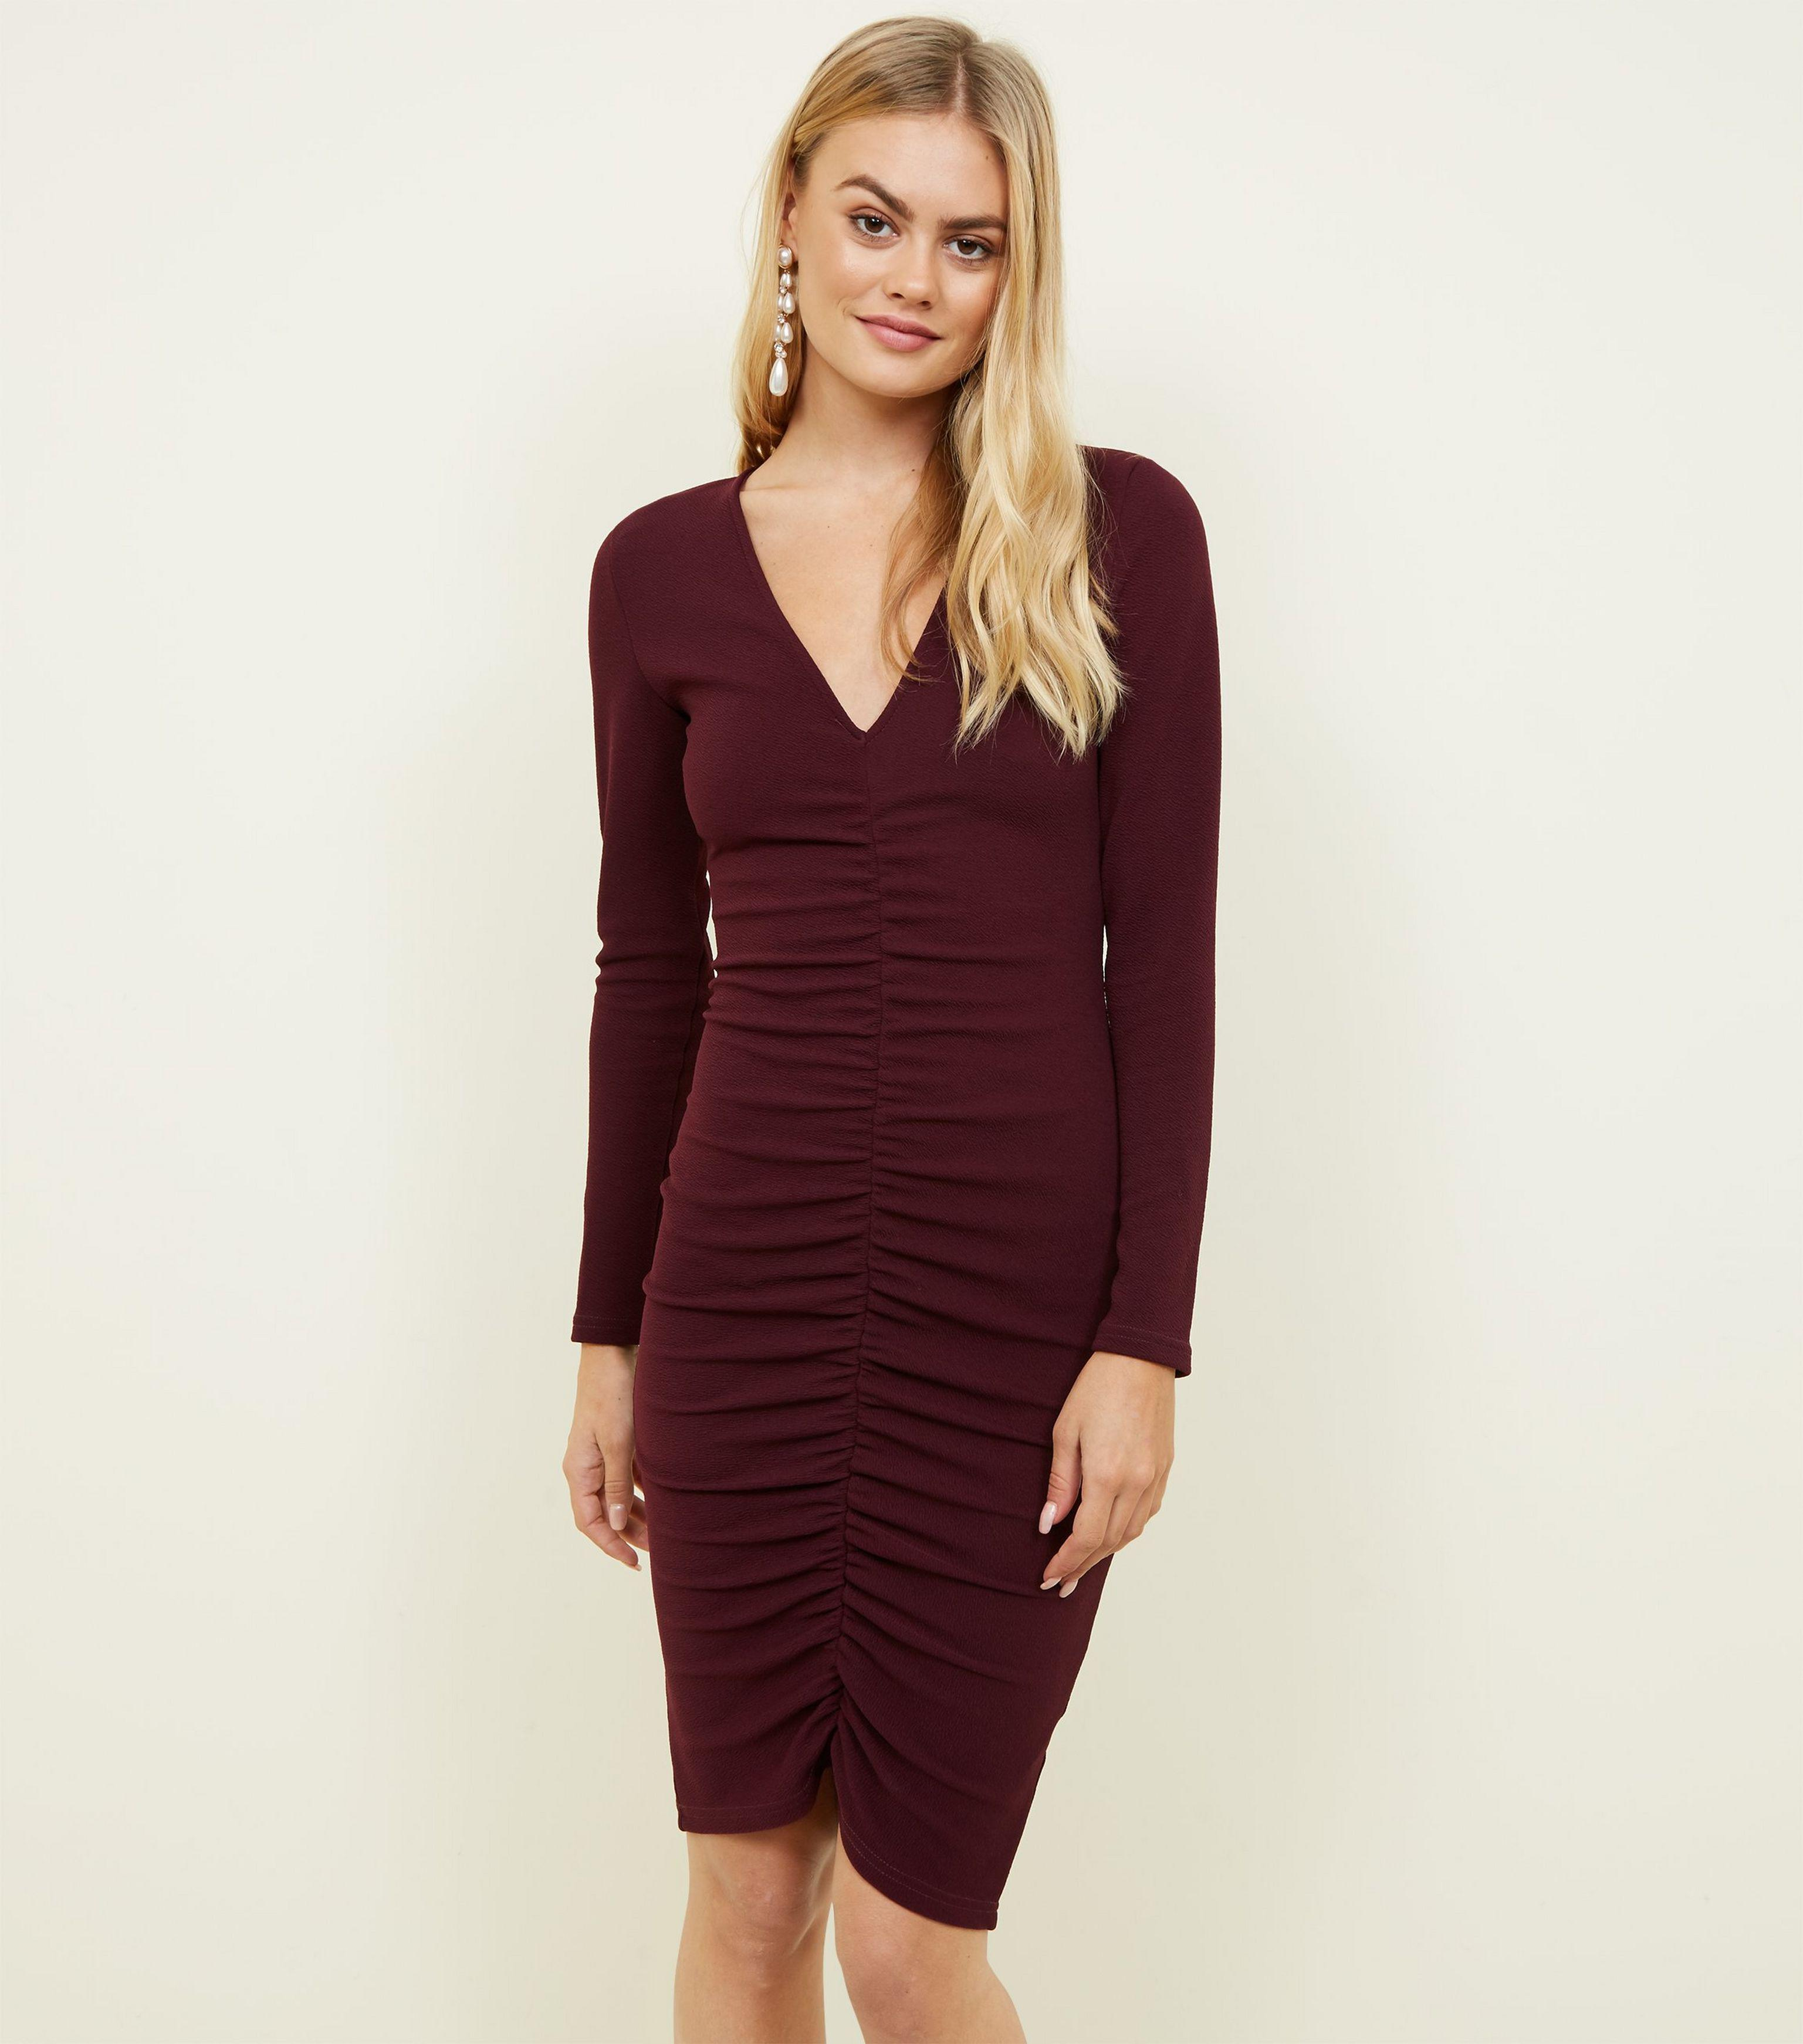 de56860651 AX Paris Burgundy Ruched Front Bodycon Dress in Red - Lyst